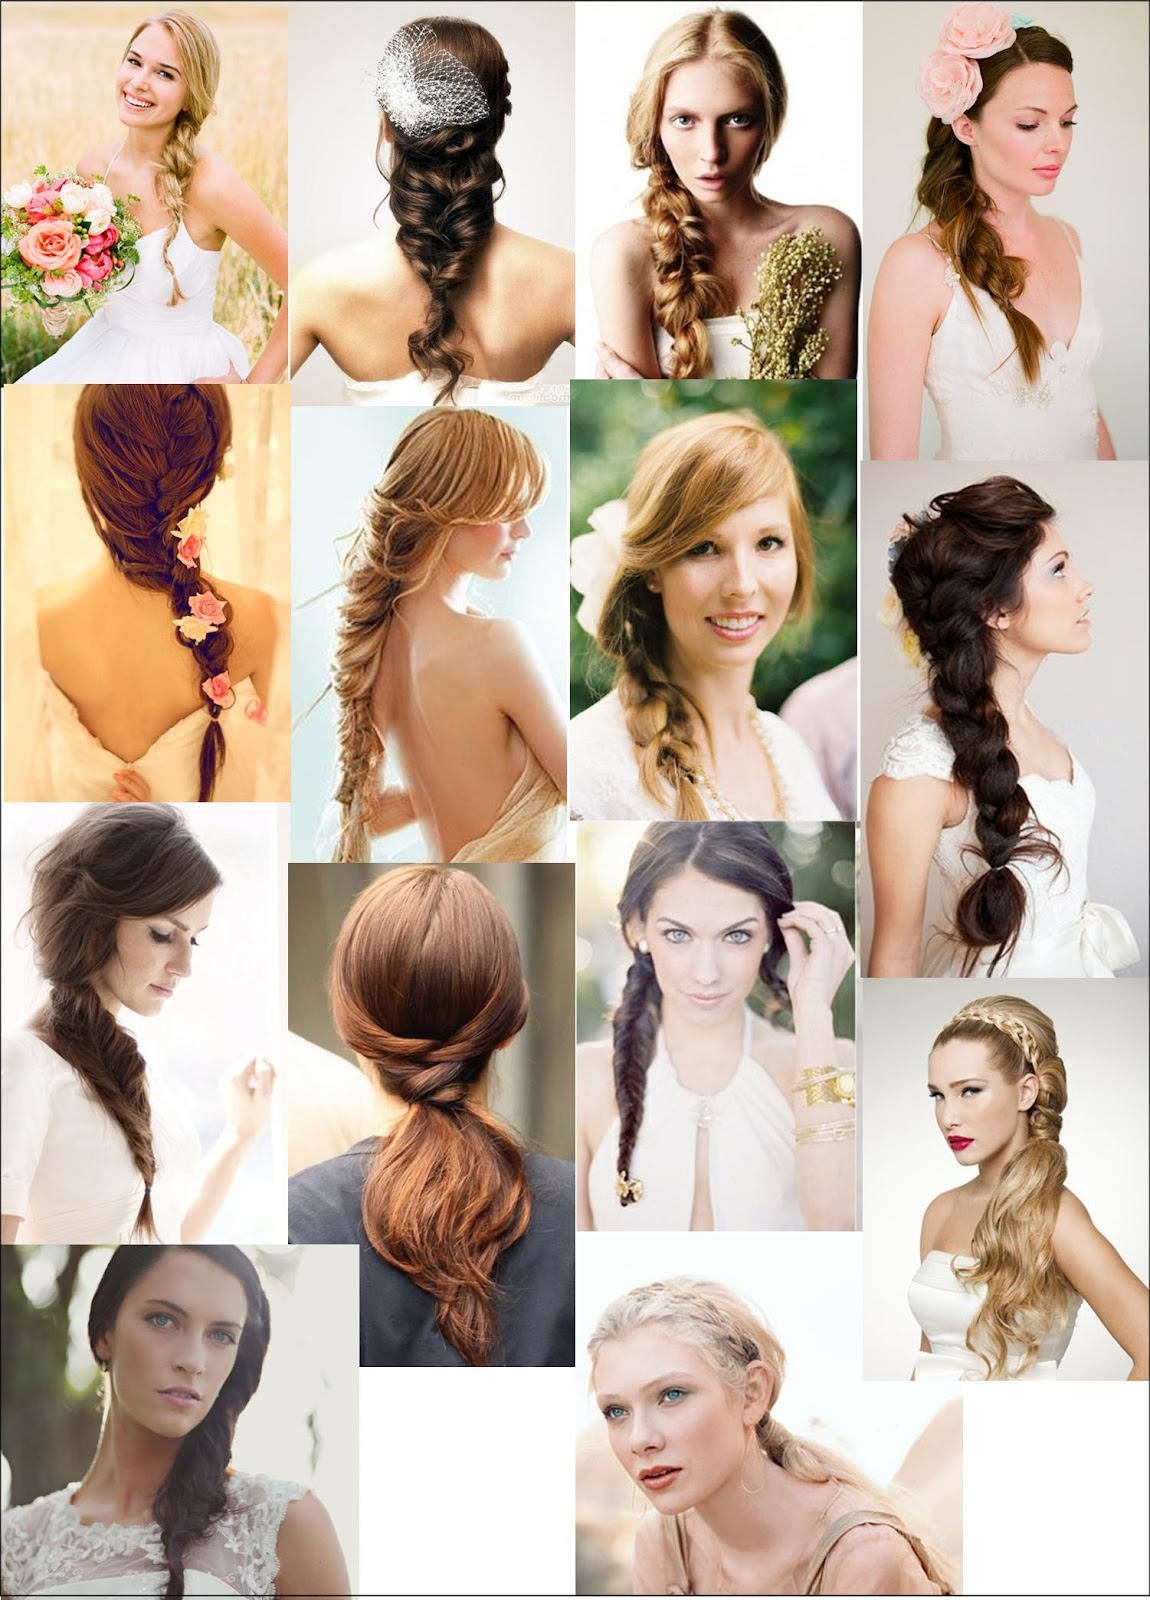 PONYTAILS WITH BRAID DETAILS FISHTAILS AND LONG LOOSE BRAIDS